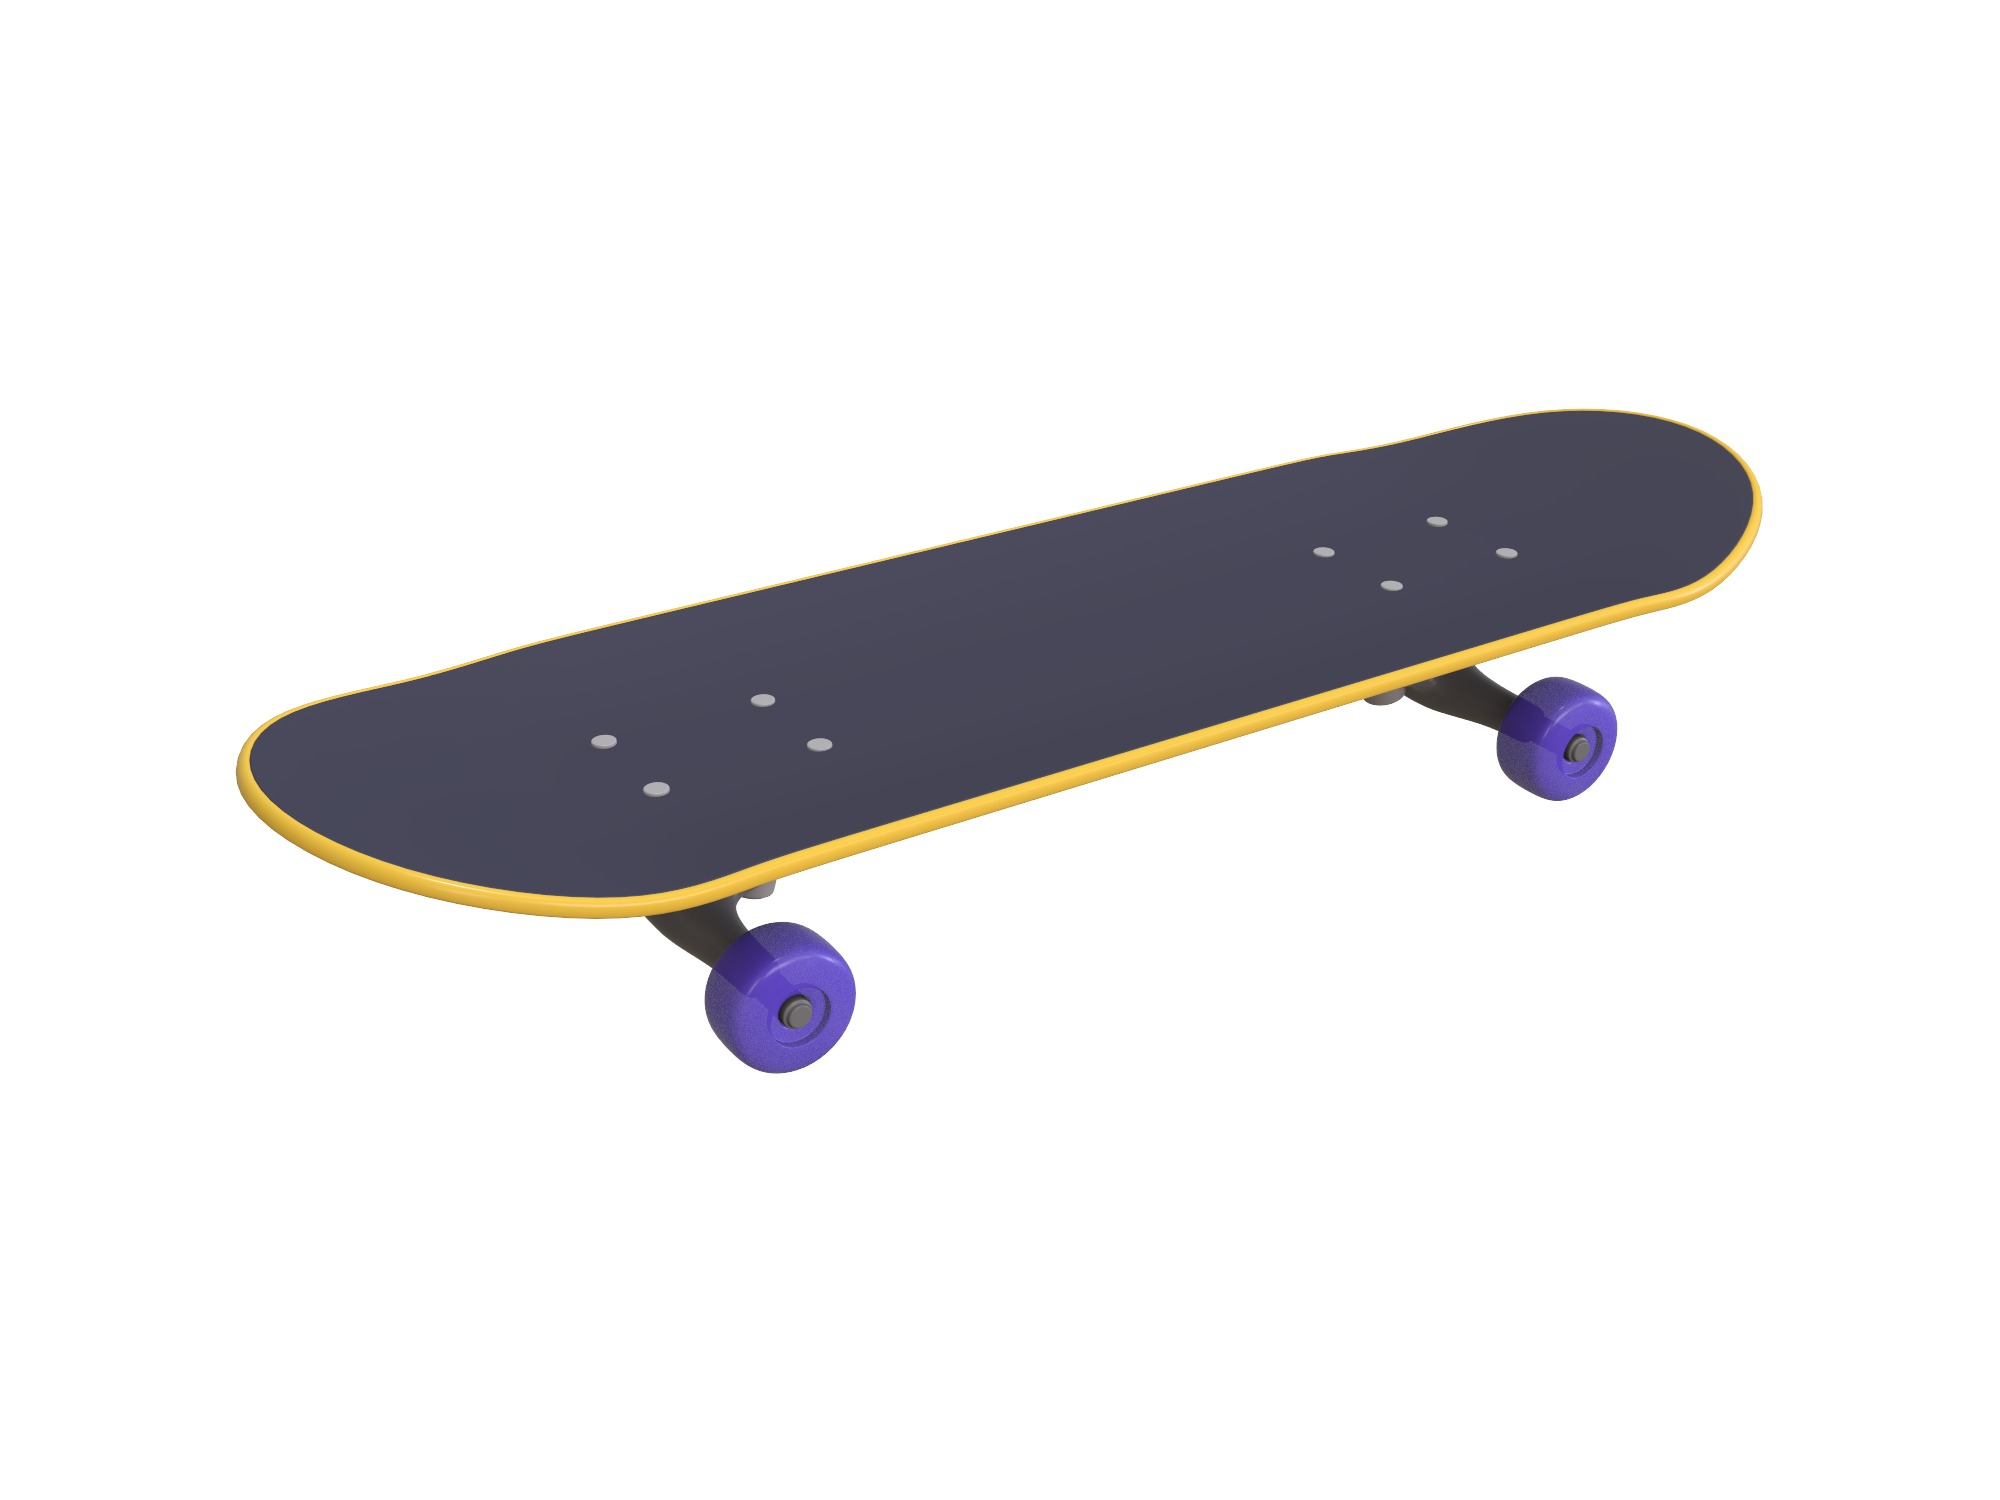 Skateboard - 3D design by assets May 31, 2018